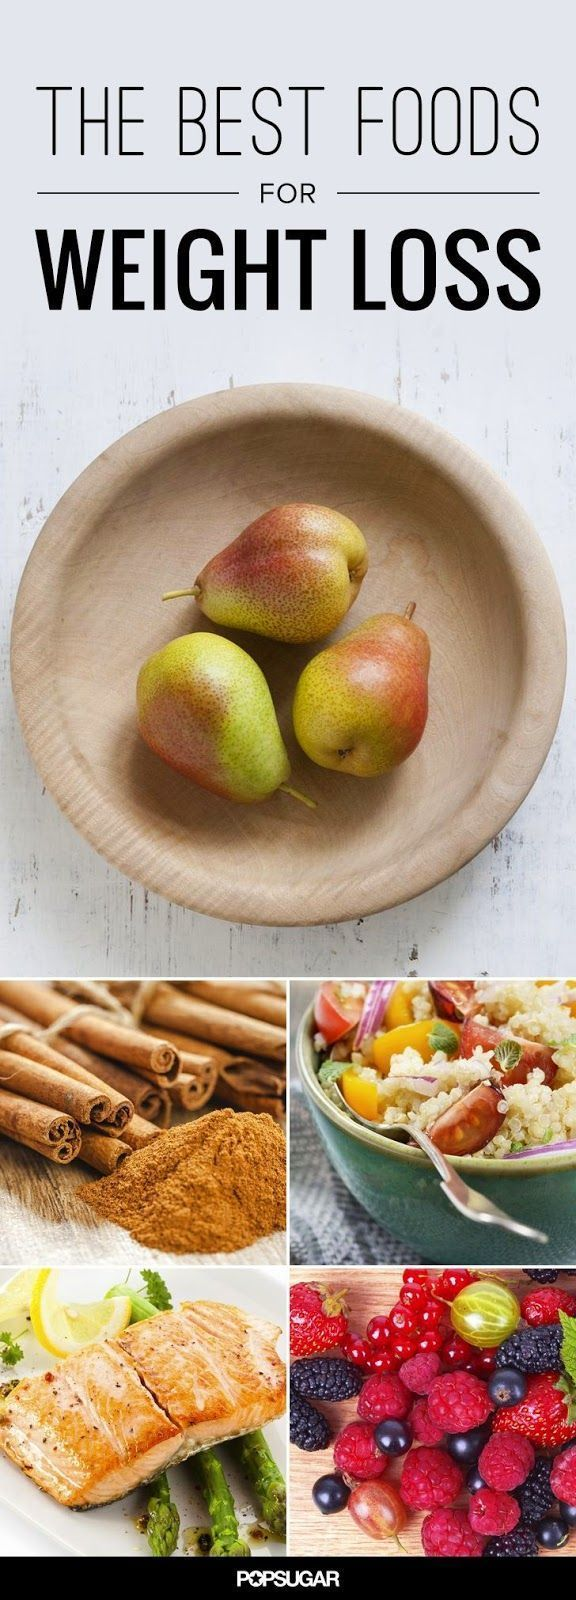 Forget all the diets and the crazy confusing things you've been told about how to lose weight. We've made it simple and boiled it down to simply 25 of the best foods that will help you feel great and shed the extra pounds.